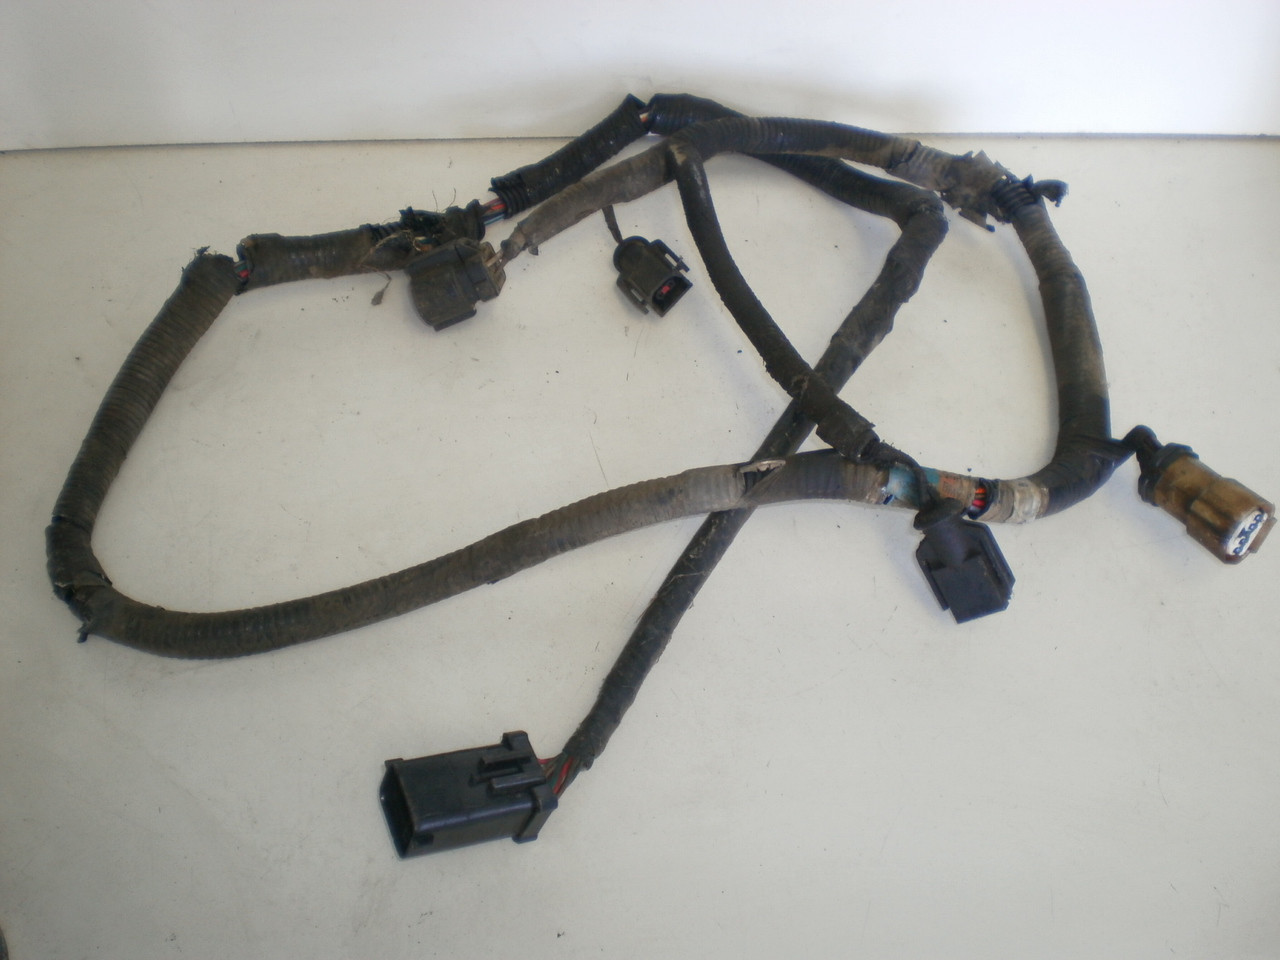 1994 1995 Ford Mustang 50 V8 302 Engine Smog Pump Lines Valves Harness Wiring Larger More Photos